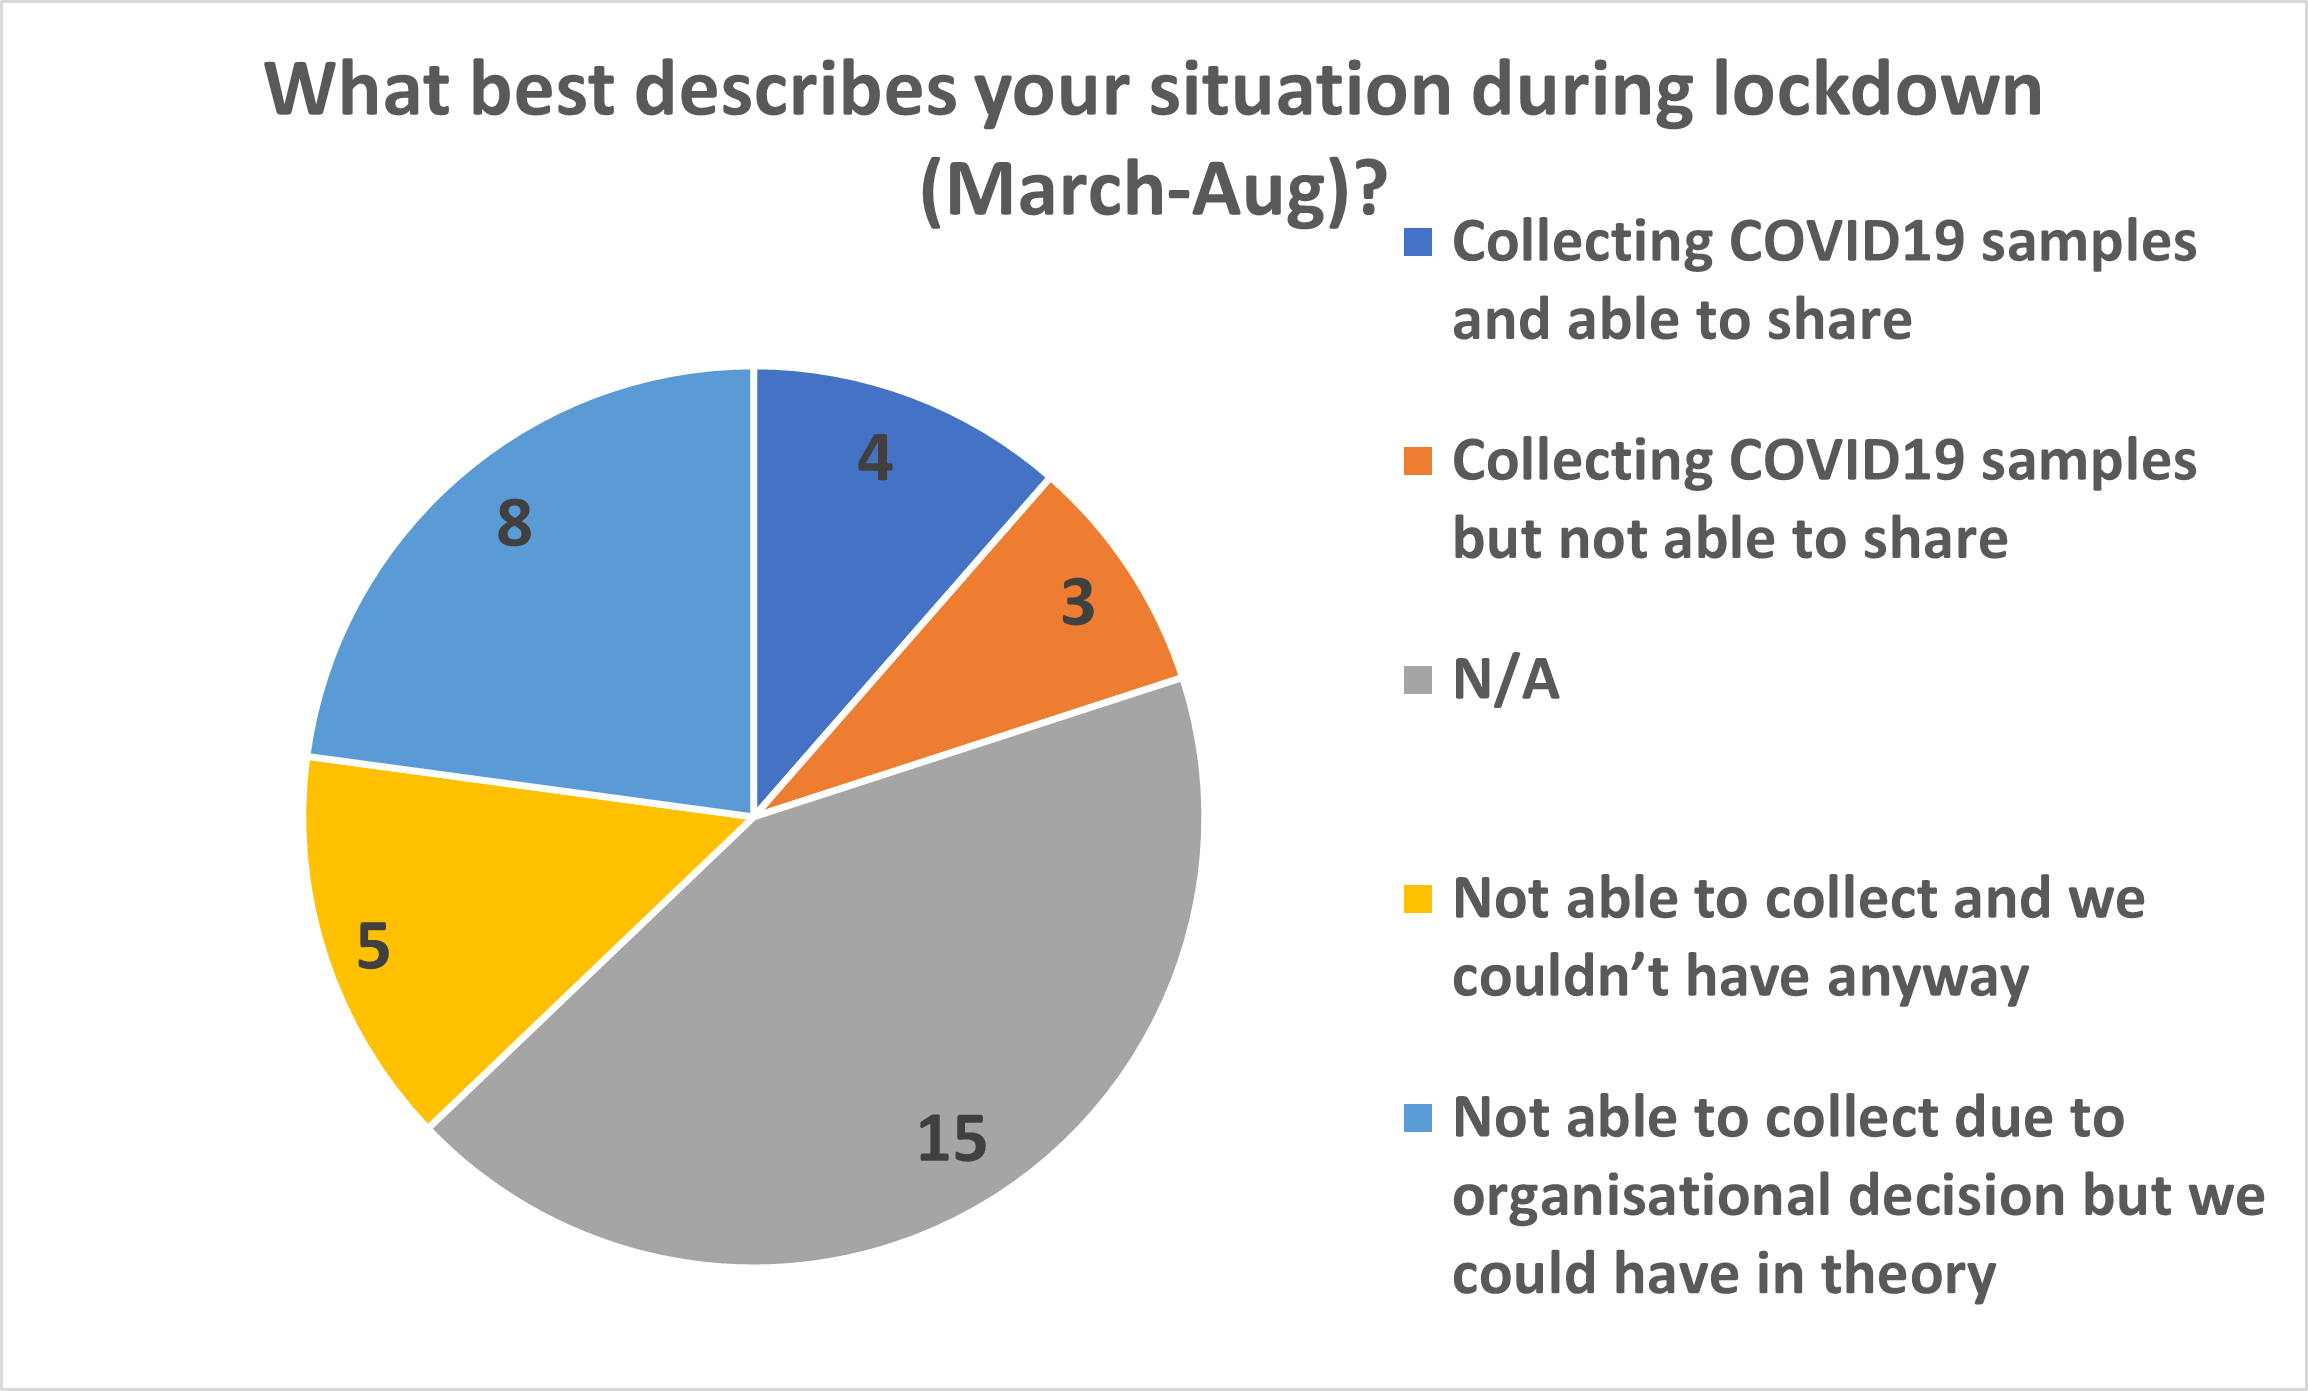 Pie chart from the Biobanking Showcase highlighting biobanks ability to collect samples during lockdown